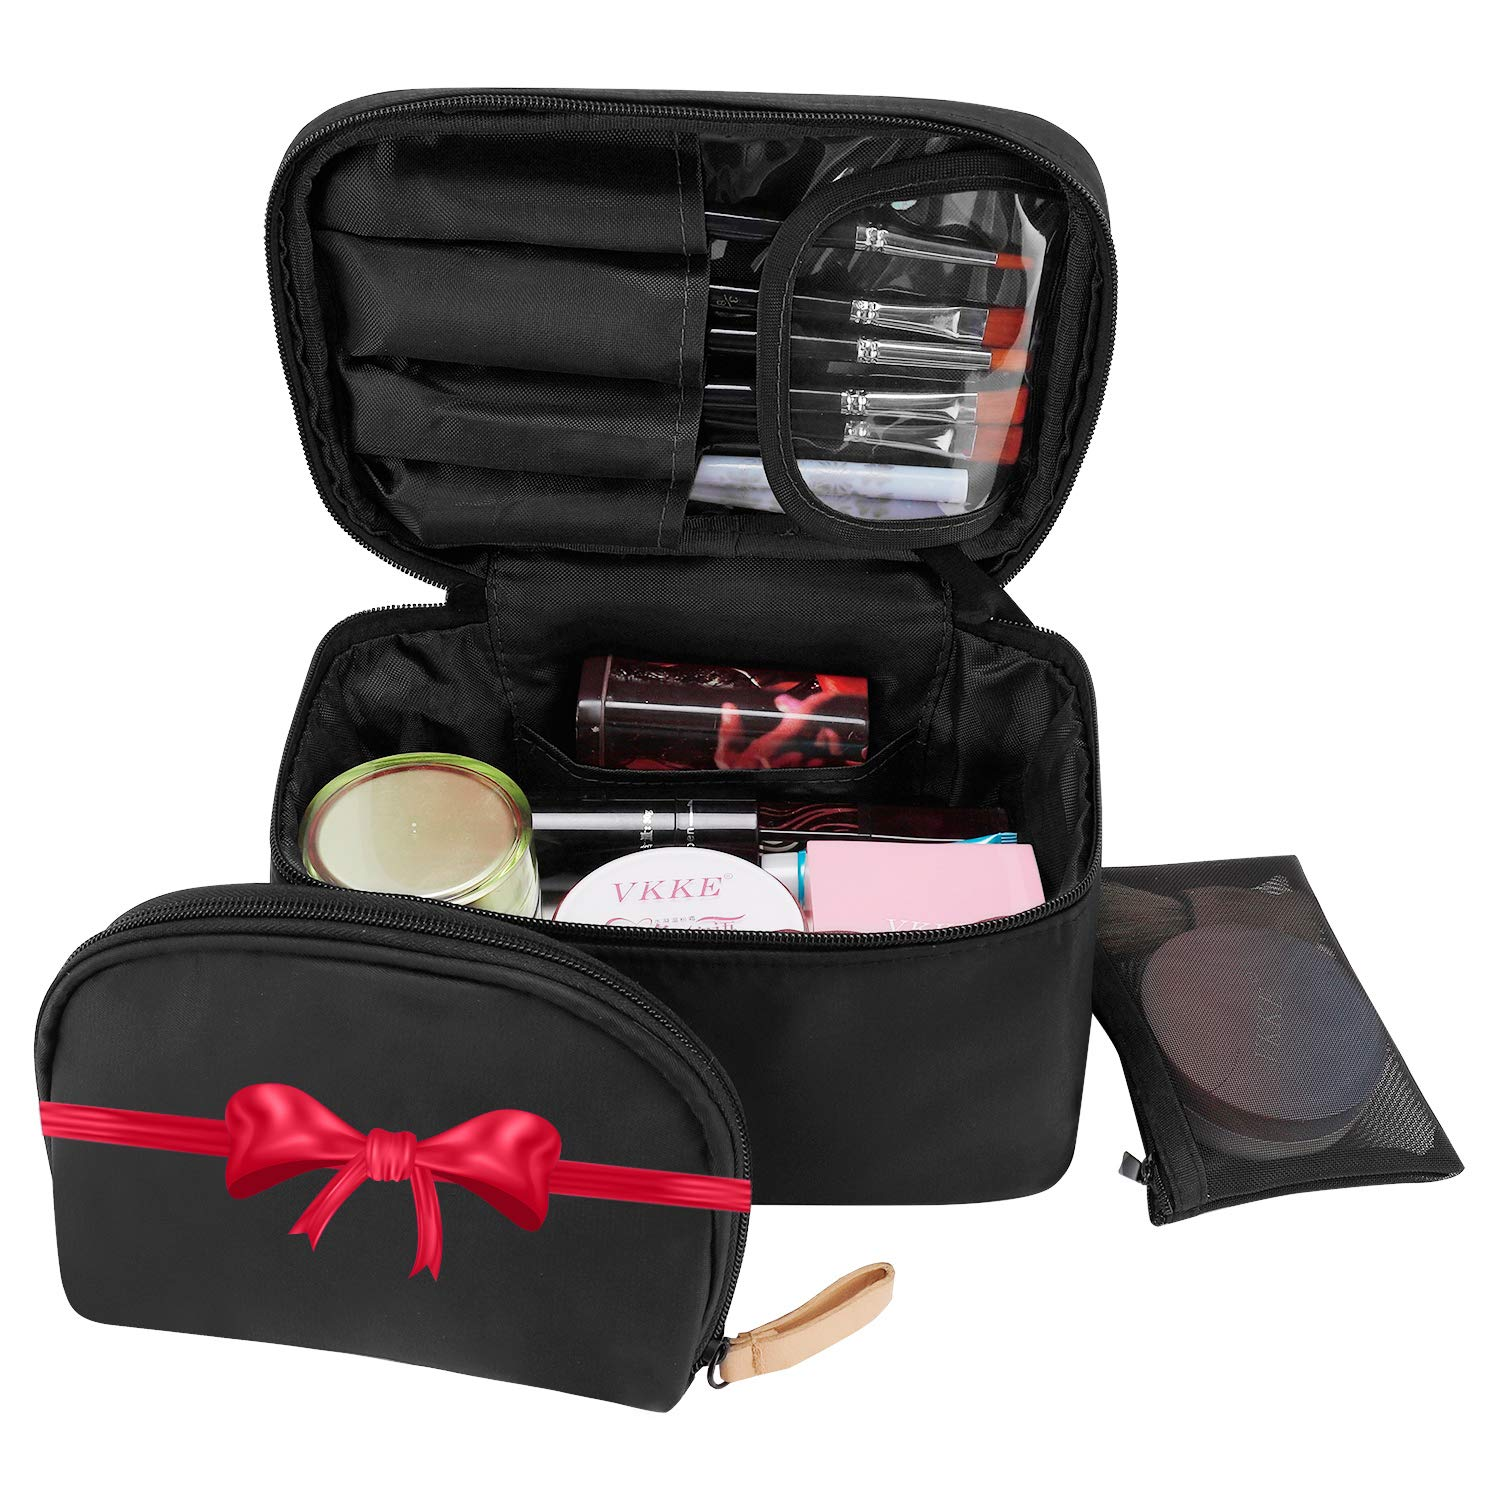 Travel Makeup Bag,Makeup Bag Organizer Cosmetic Makeup Bags for Women Make Up Cosmetic Bag Case with Brush Holder-Bonus Cosmetic Pouch